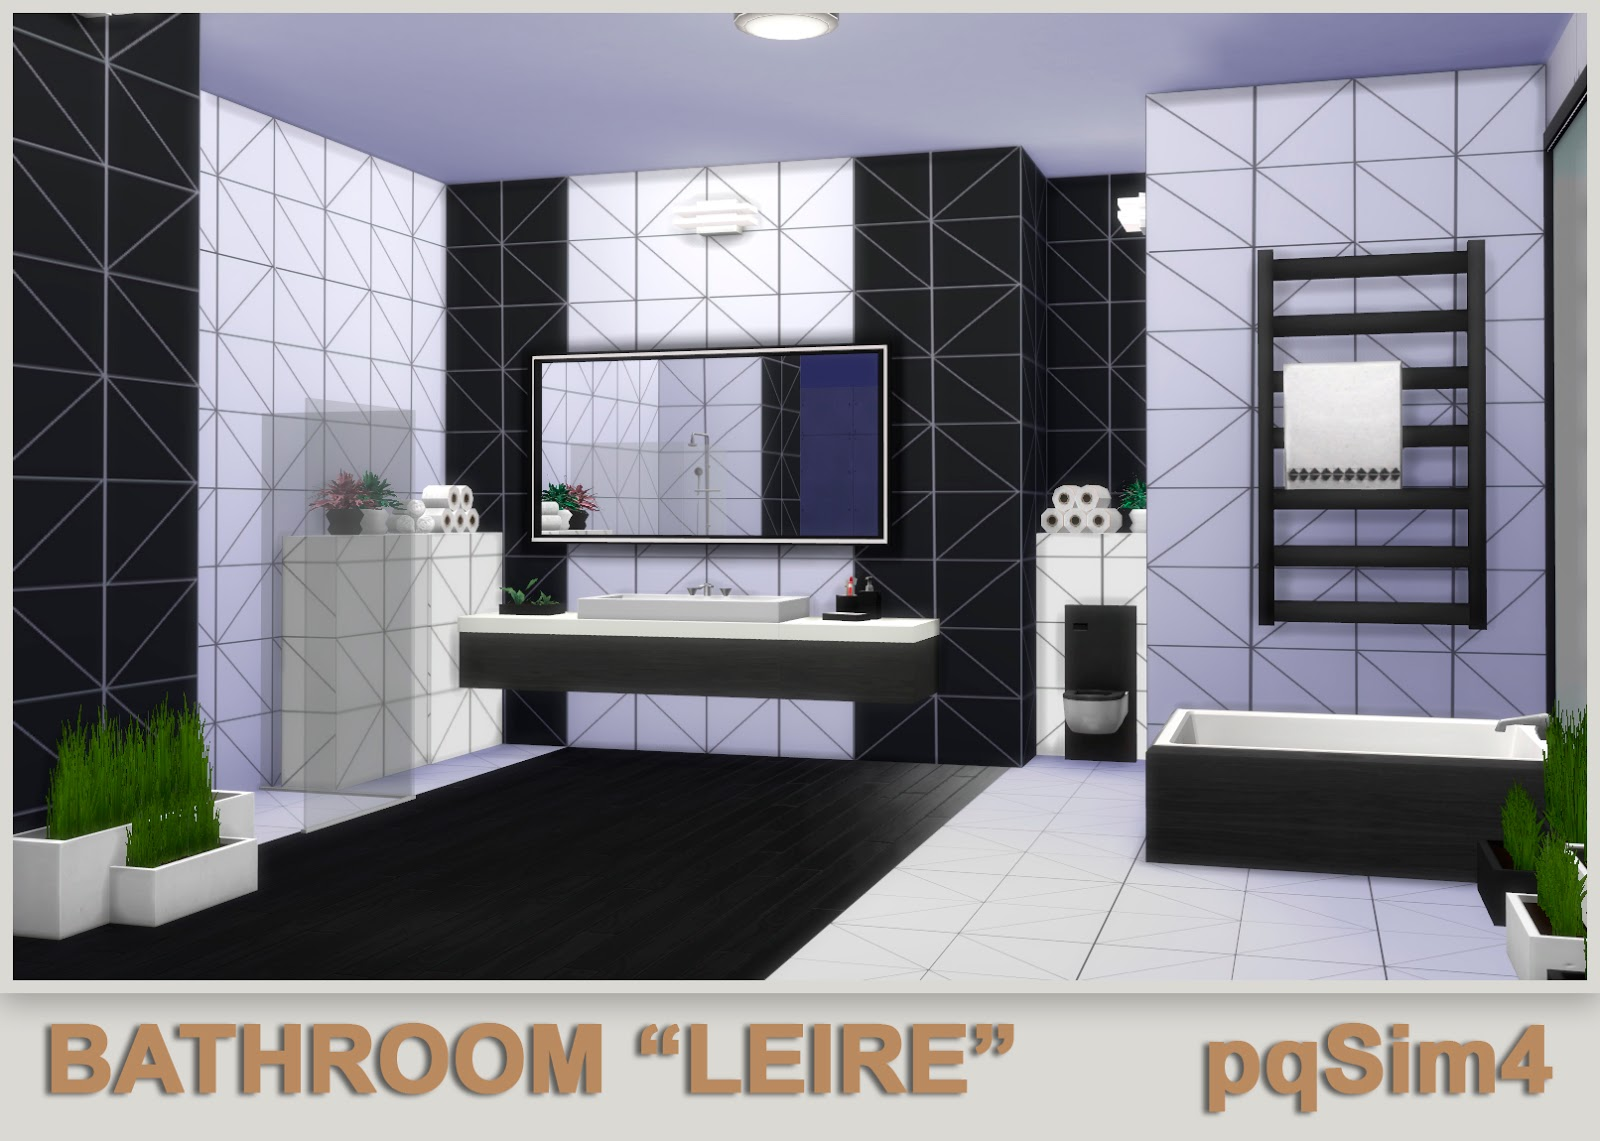 """I am peacemaker ic and i am a creator of sims custom content (currently ts4). Bathroom """"Leire"""". Sims 4 Custom Content."""